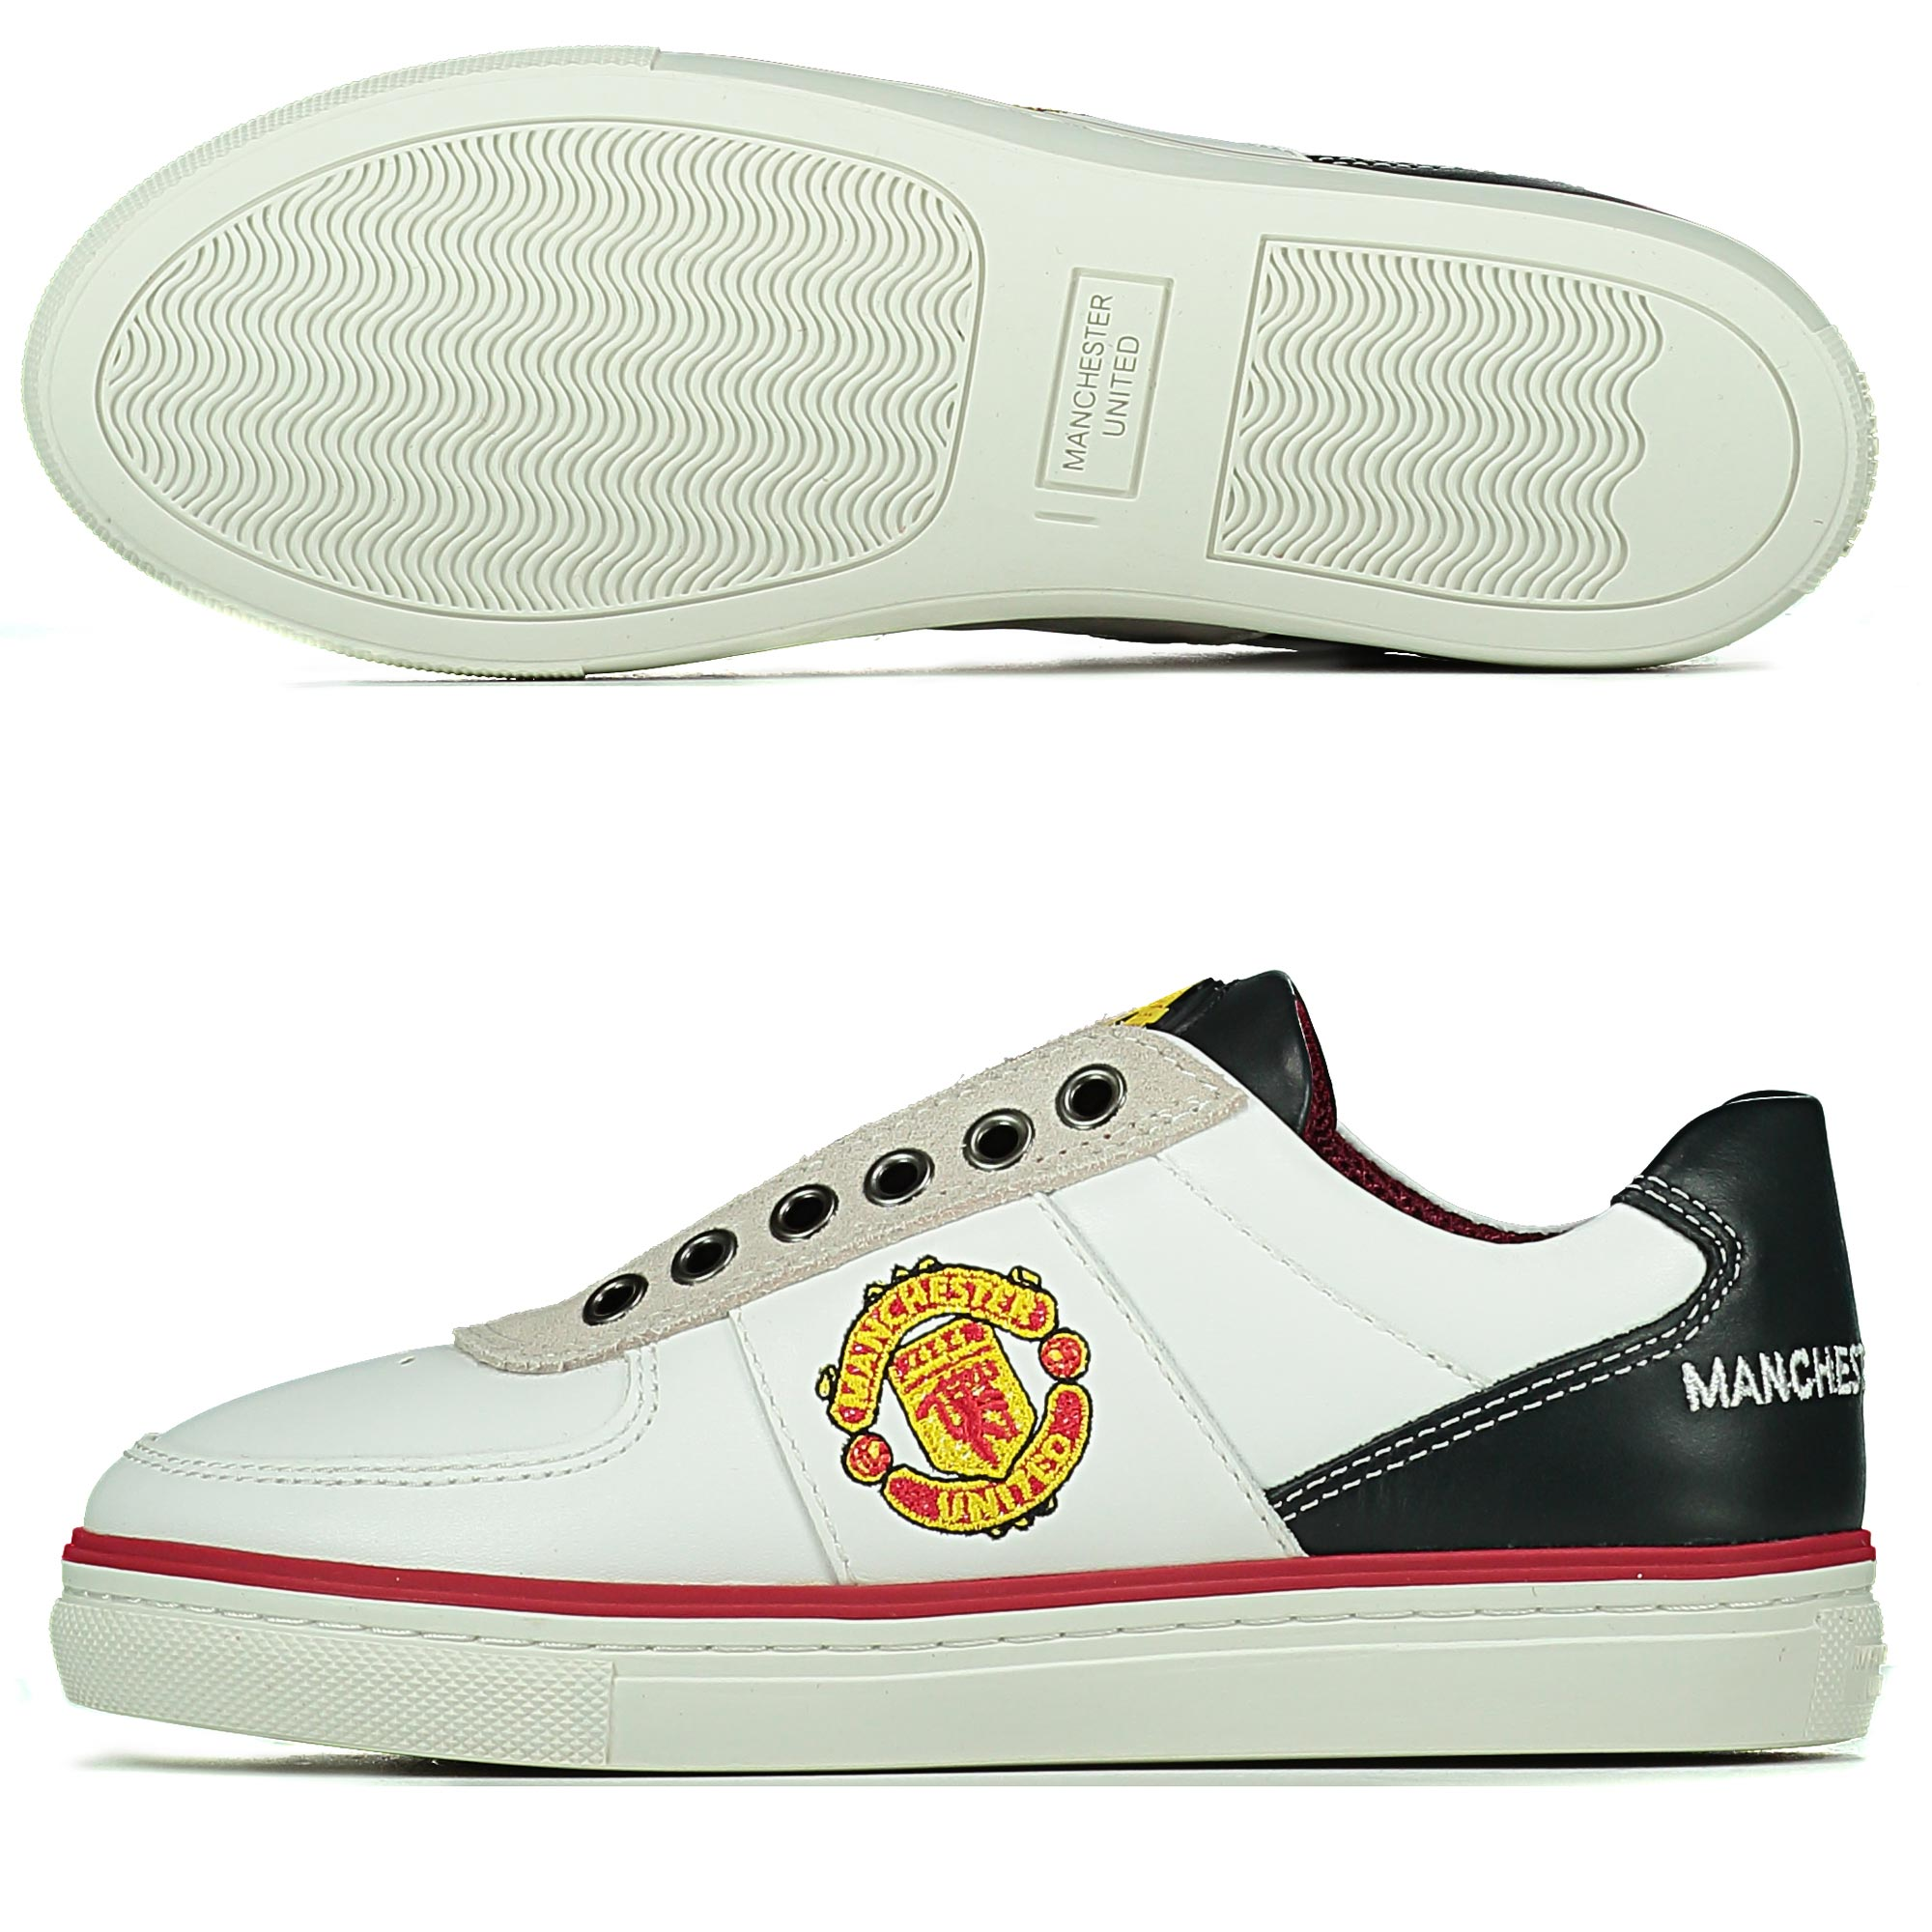 Manchester United Lifestyle Trainers - White - Kids